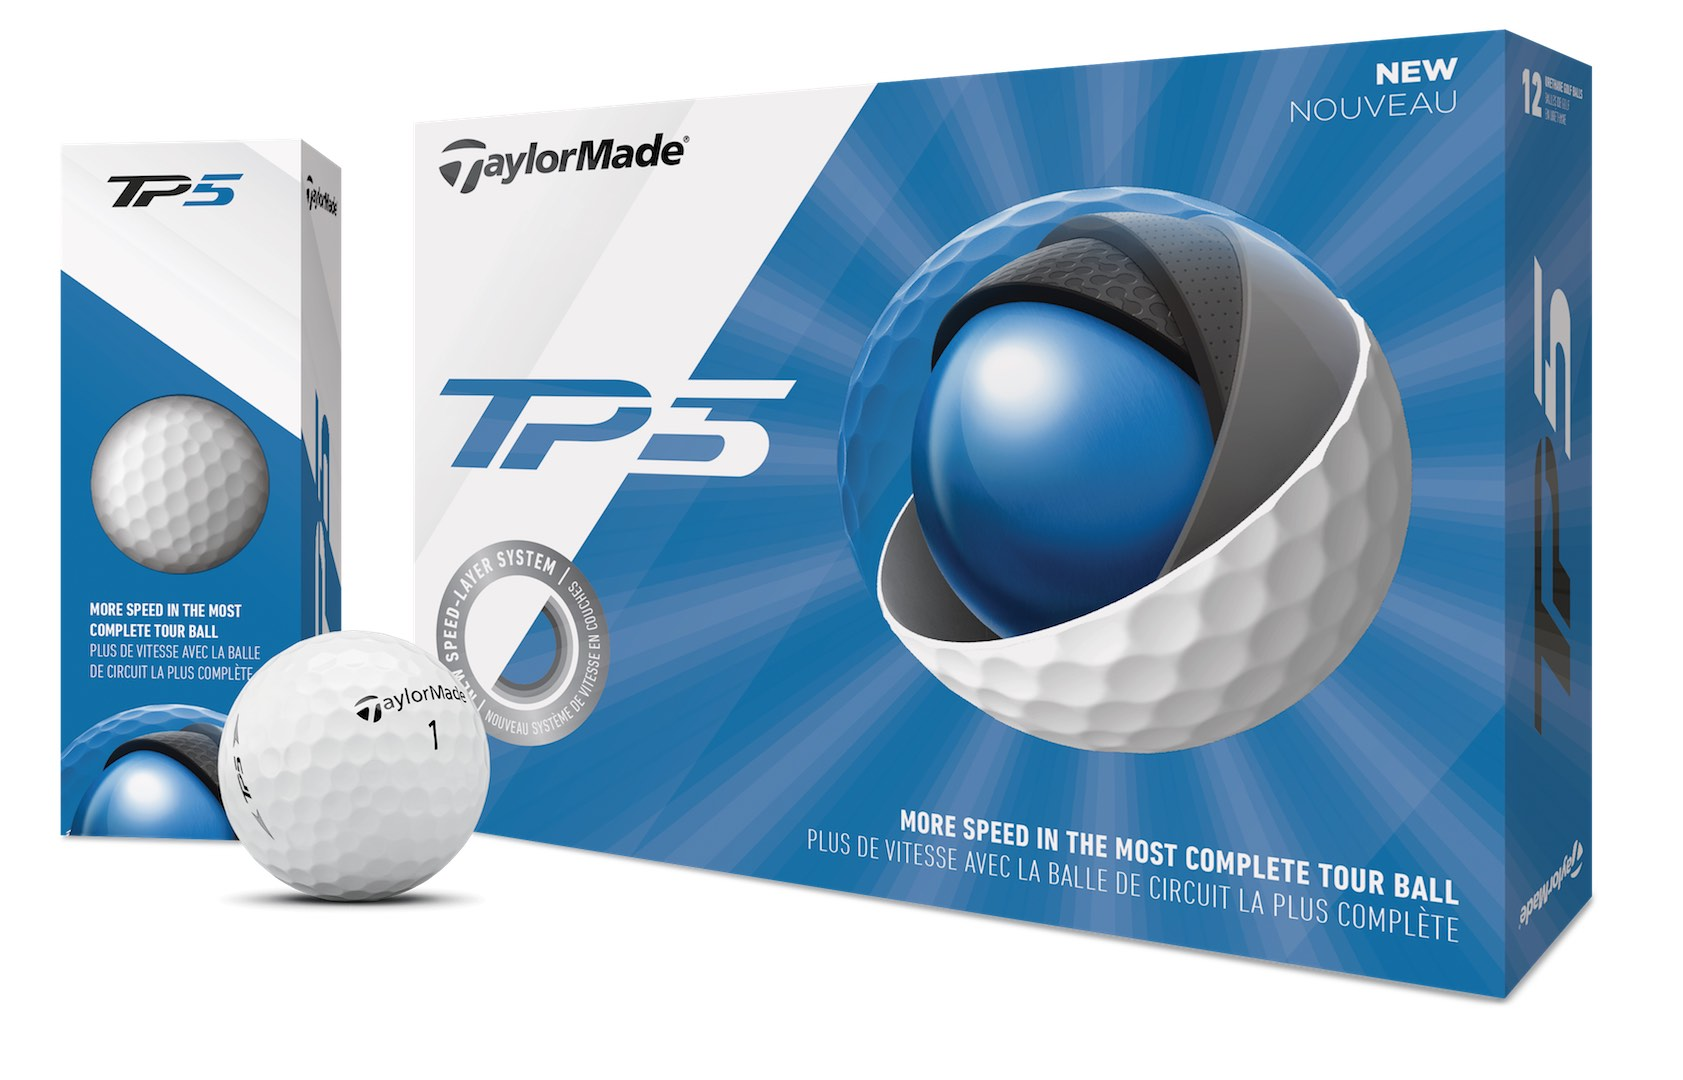 Sung-Hyun Park adds TPX5 golf ball to equipment arsenal